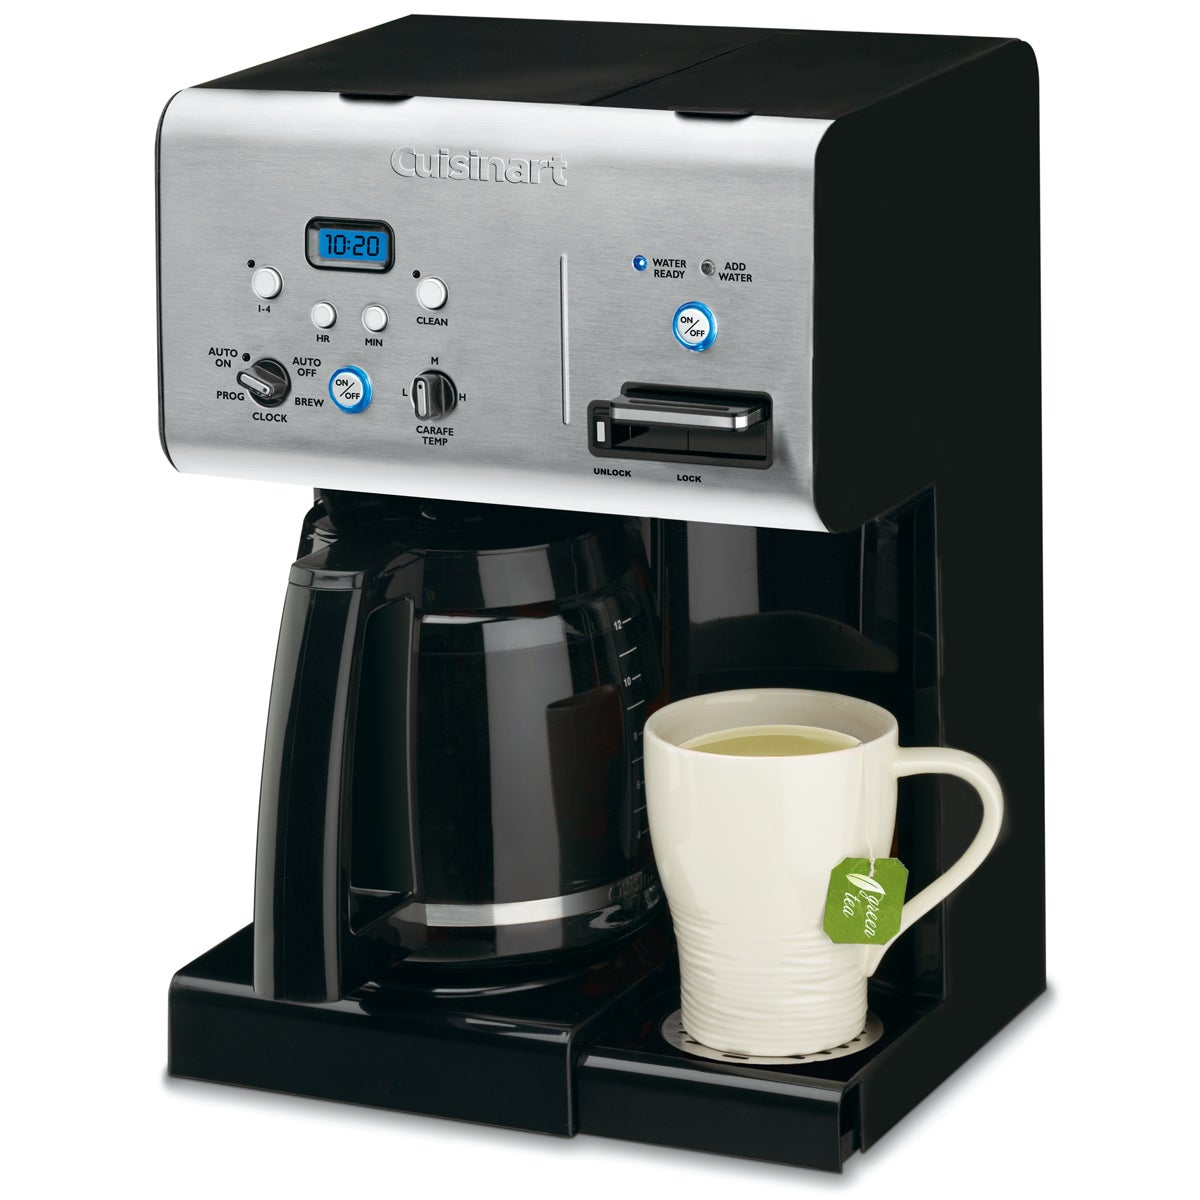 Cuisinart CHW-12 12-cup Programmable Coffee Maker (Refurbished) at Sears.com